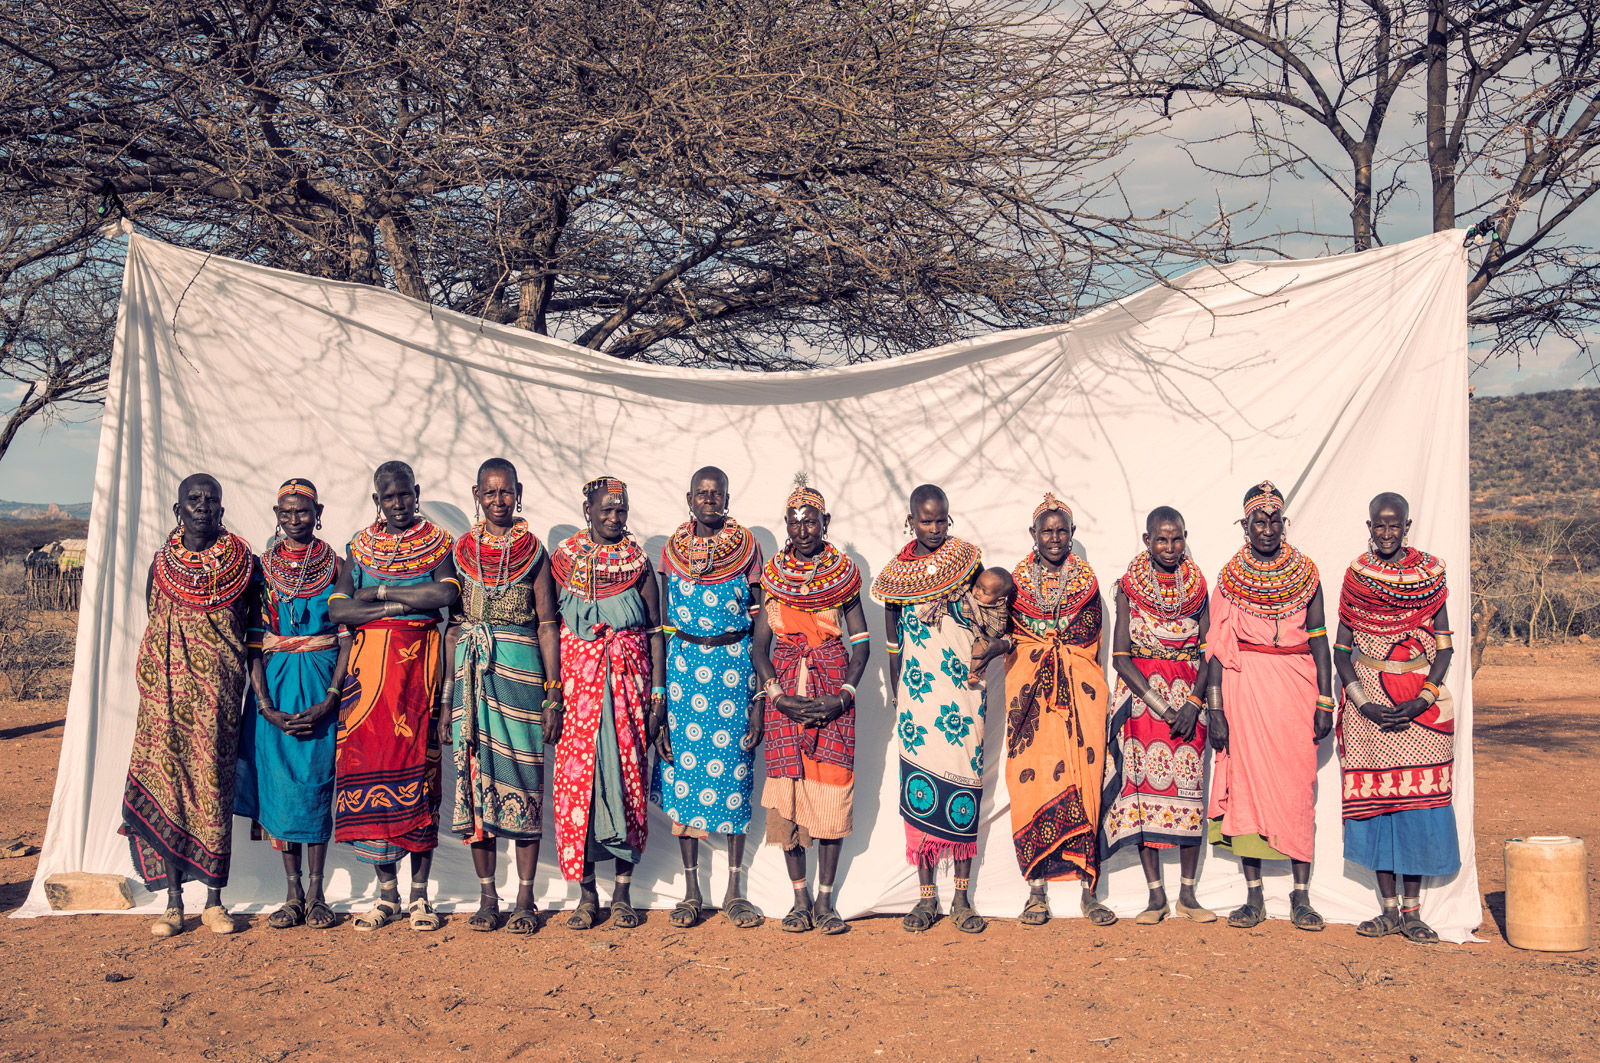 Dirk-rees-samburu-GROUP-L1008828-v2